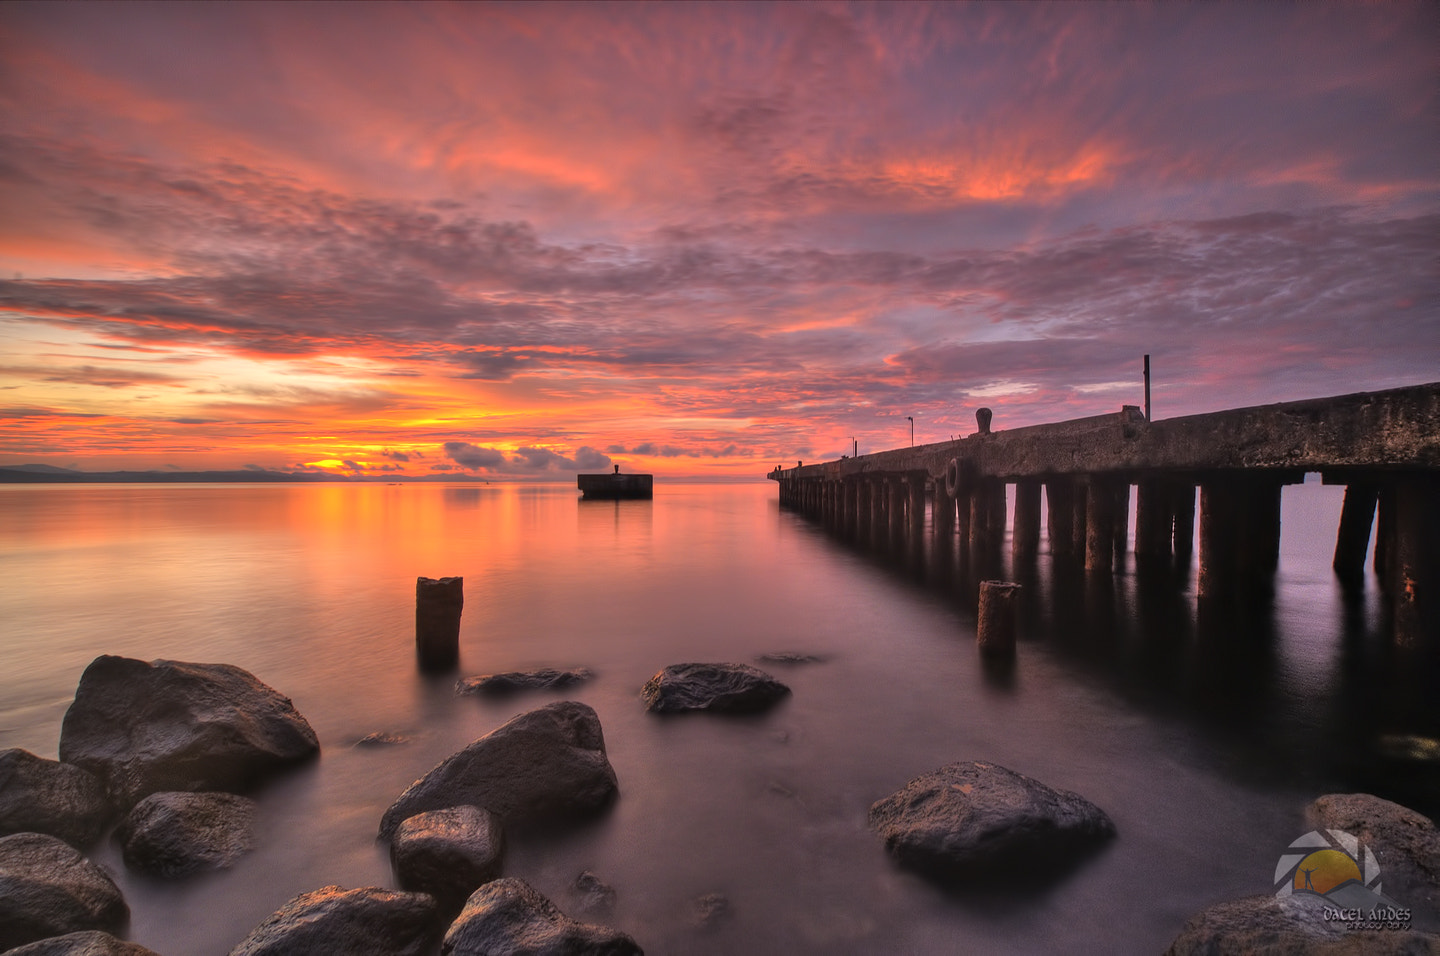 Photograph Undisturbed III by Dacel Andes on 500px